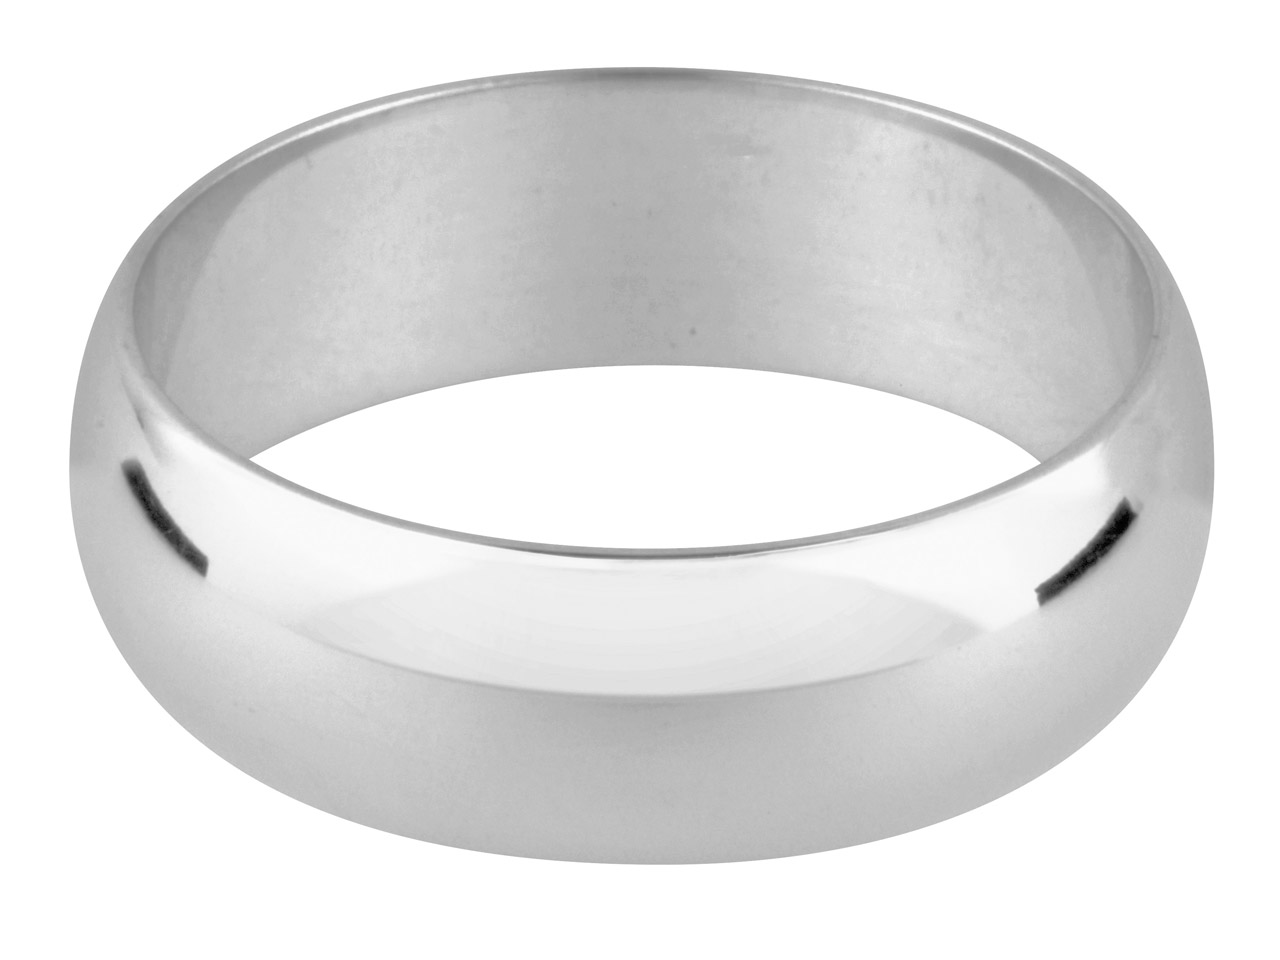 Palladium 500 D Shape Wedding Ring 8.0mm U 7.3gms Medium Weight       Hallmarked Wall Thickness 1.51mm